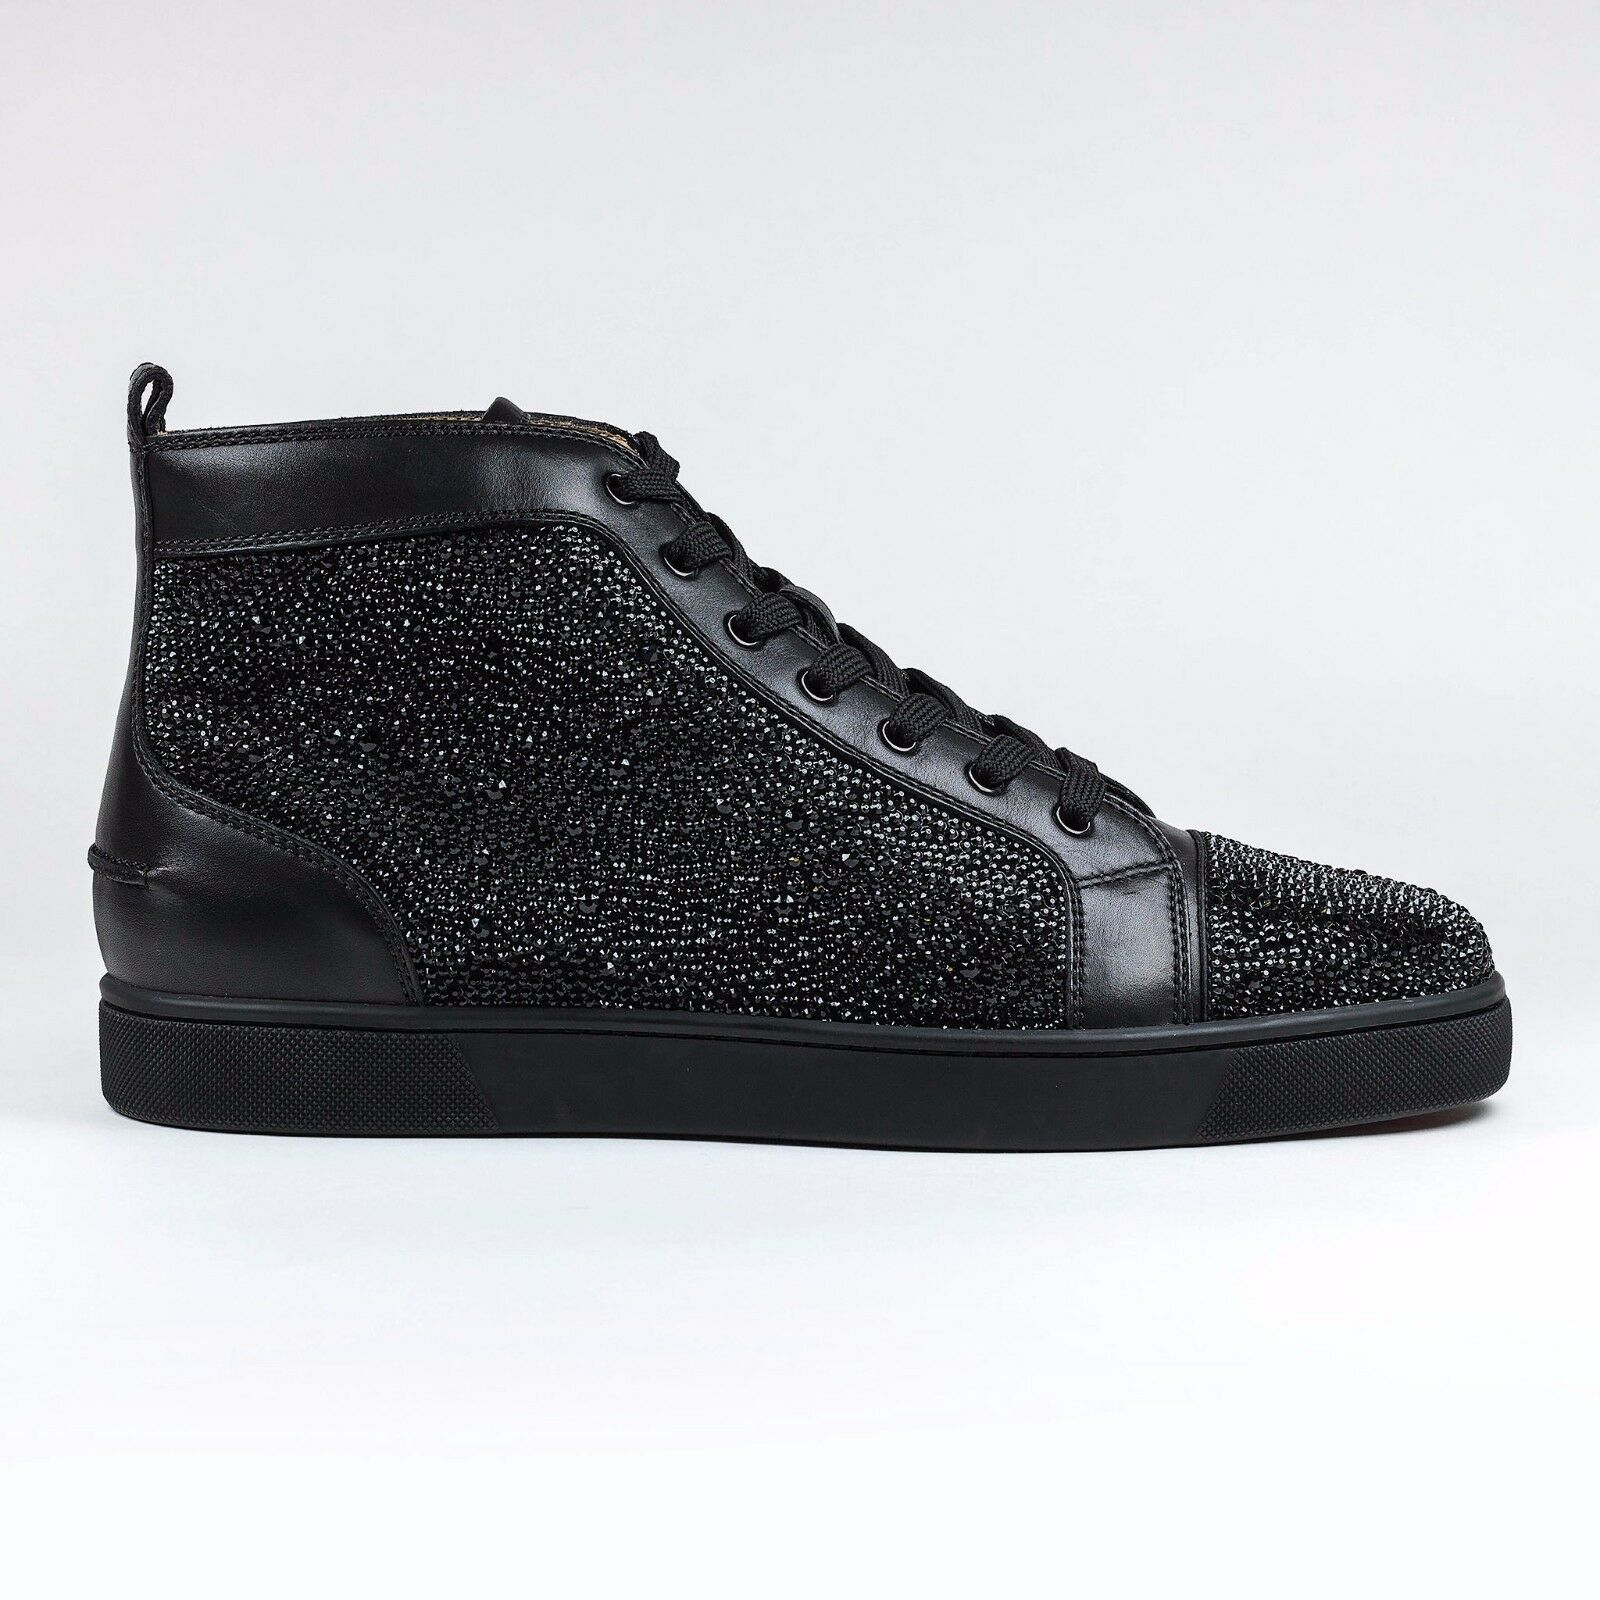 100% Authentic Christian Louboutin Louis Strass Flat Leather Black Sneaker